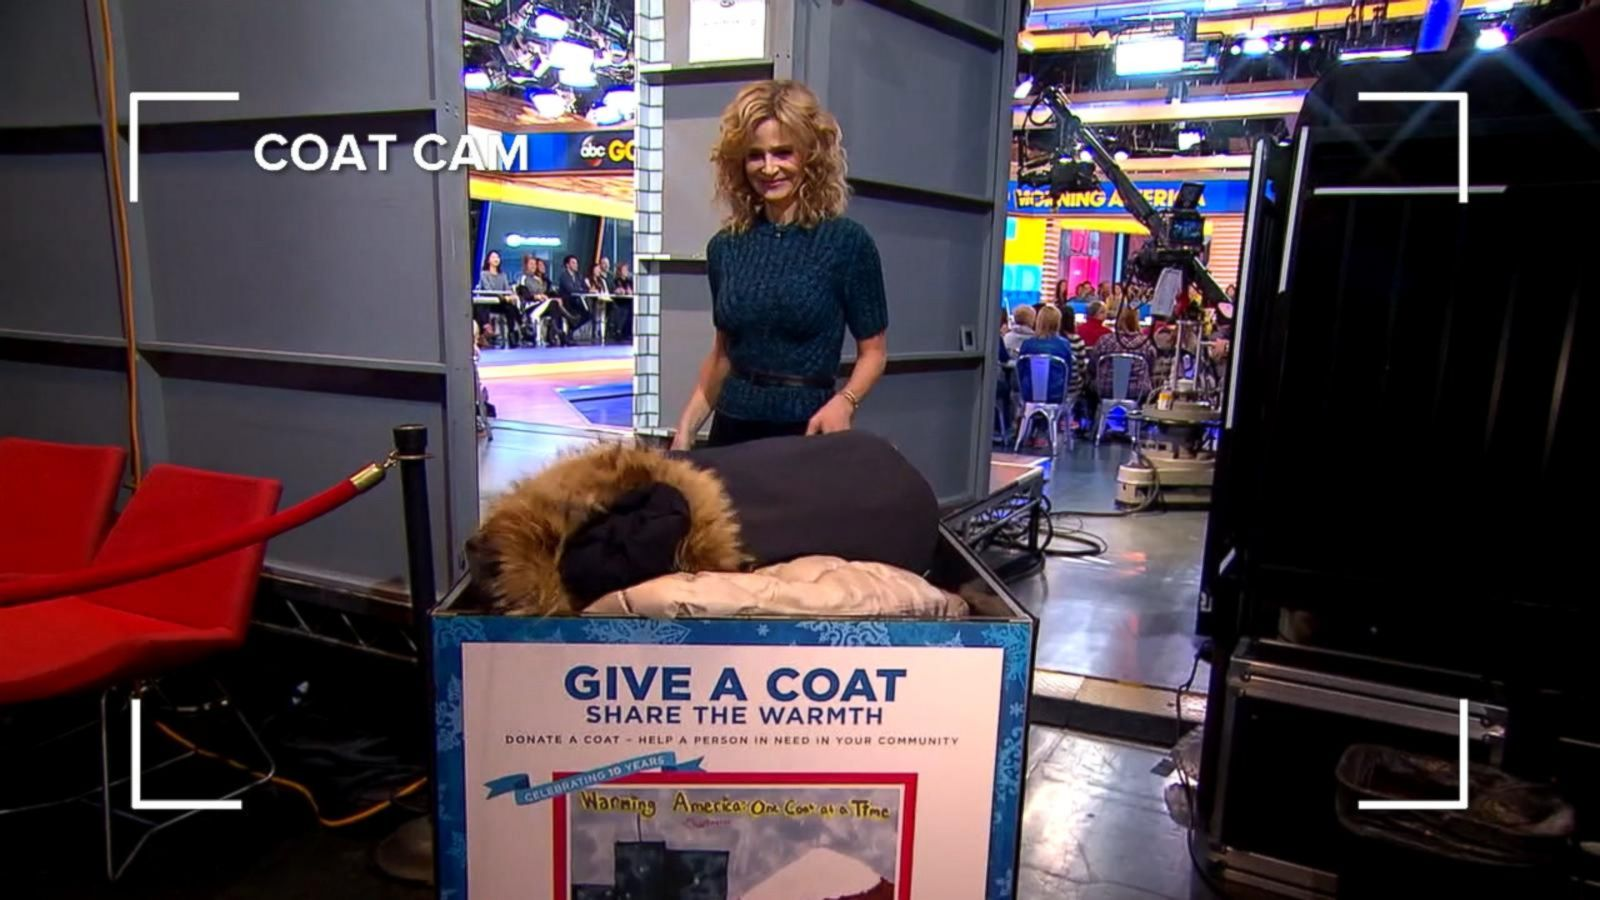 VIDEO: Kacey Musgraves, Kyra Sedgwick Donate Coats